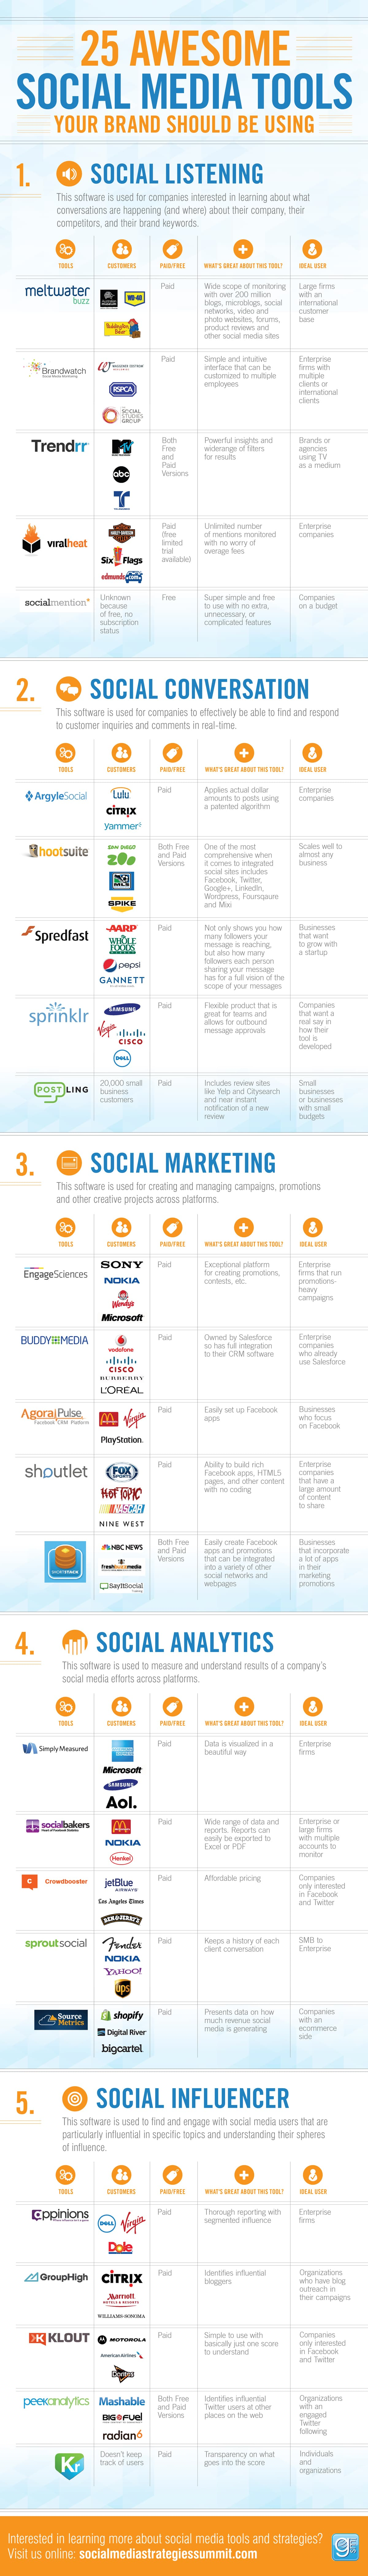 25 Social Media Tools Infographic